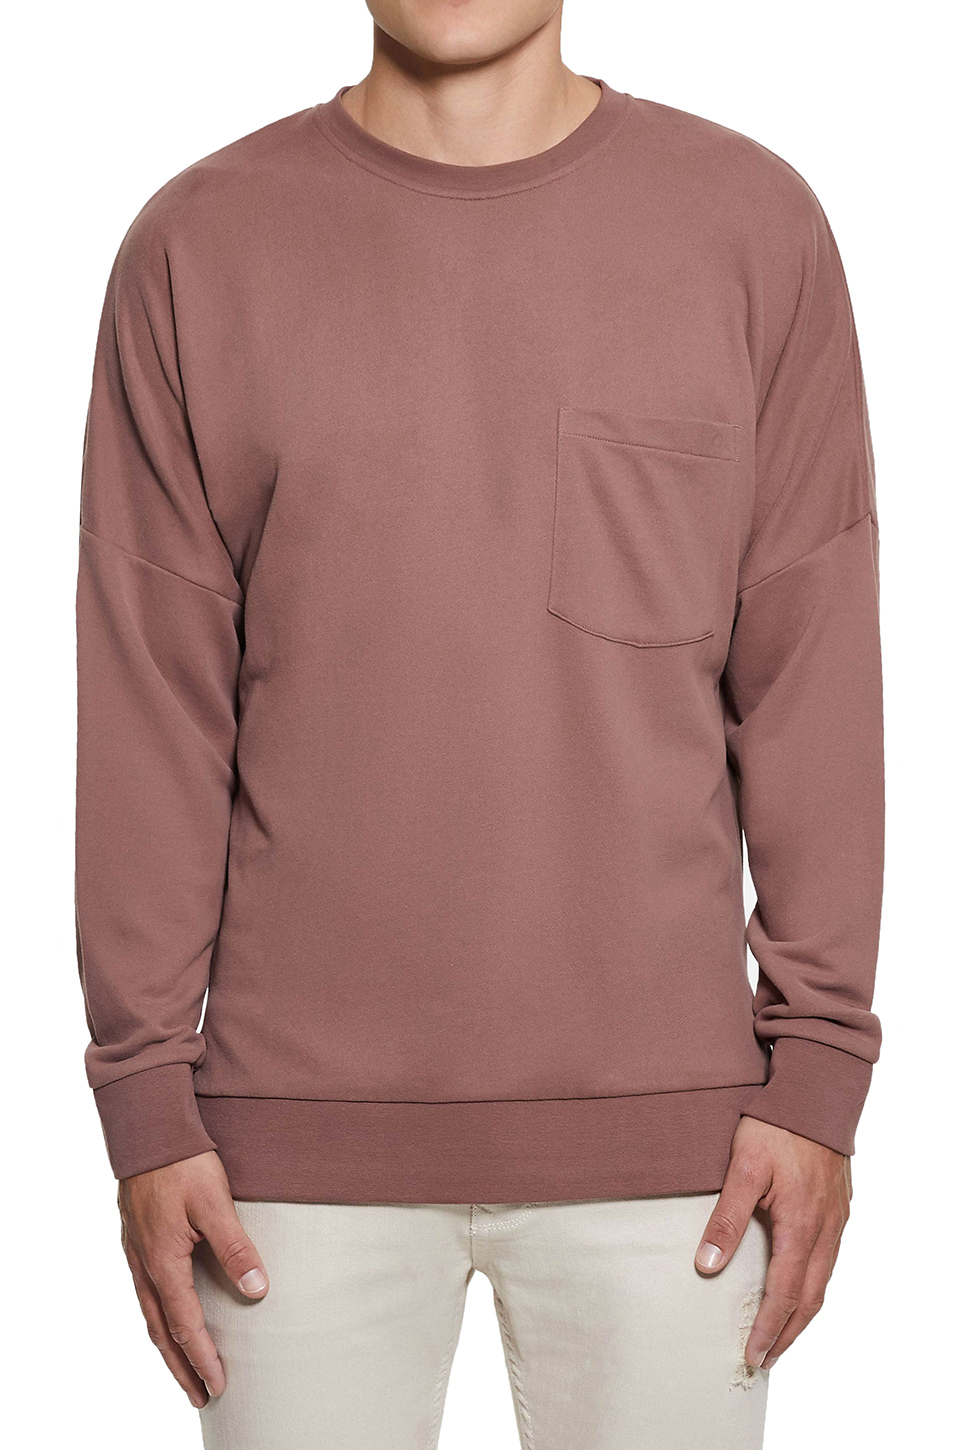 Five Four Wilson Sweater in Mauve